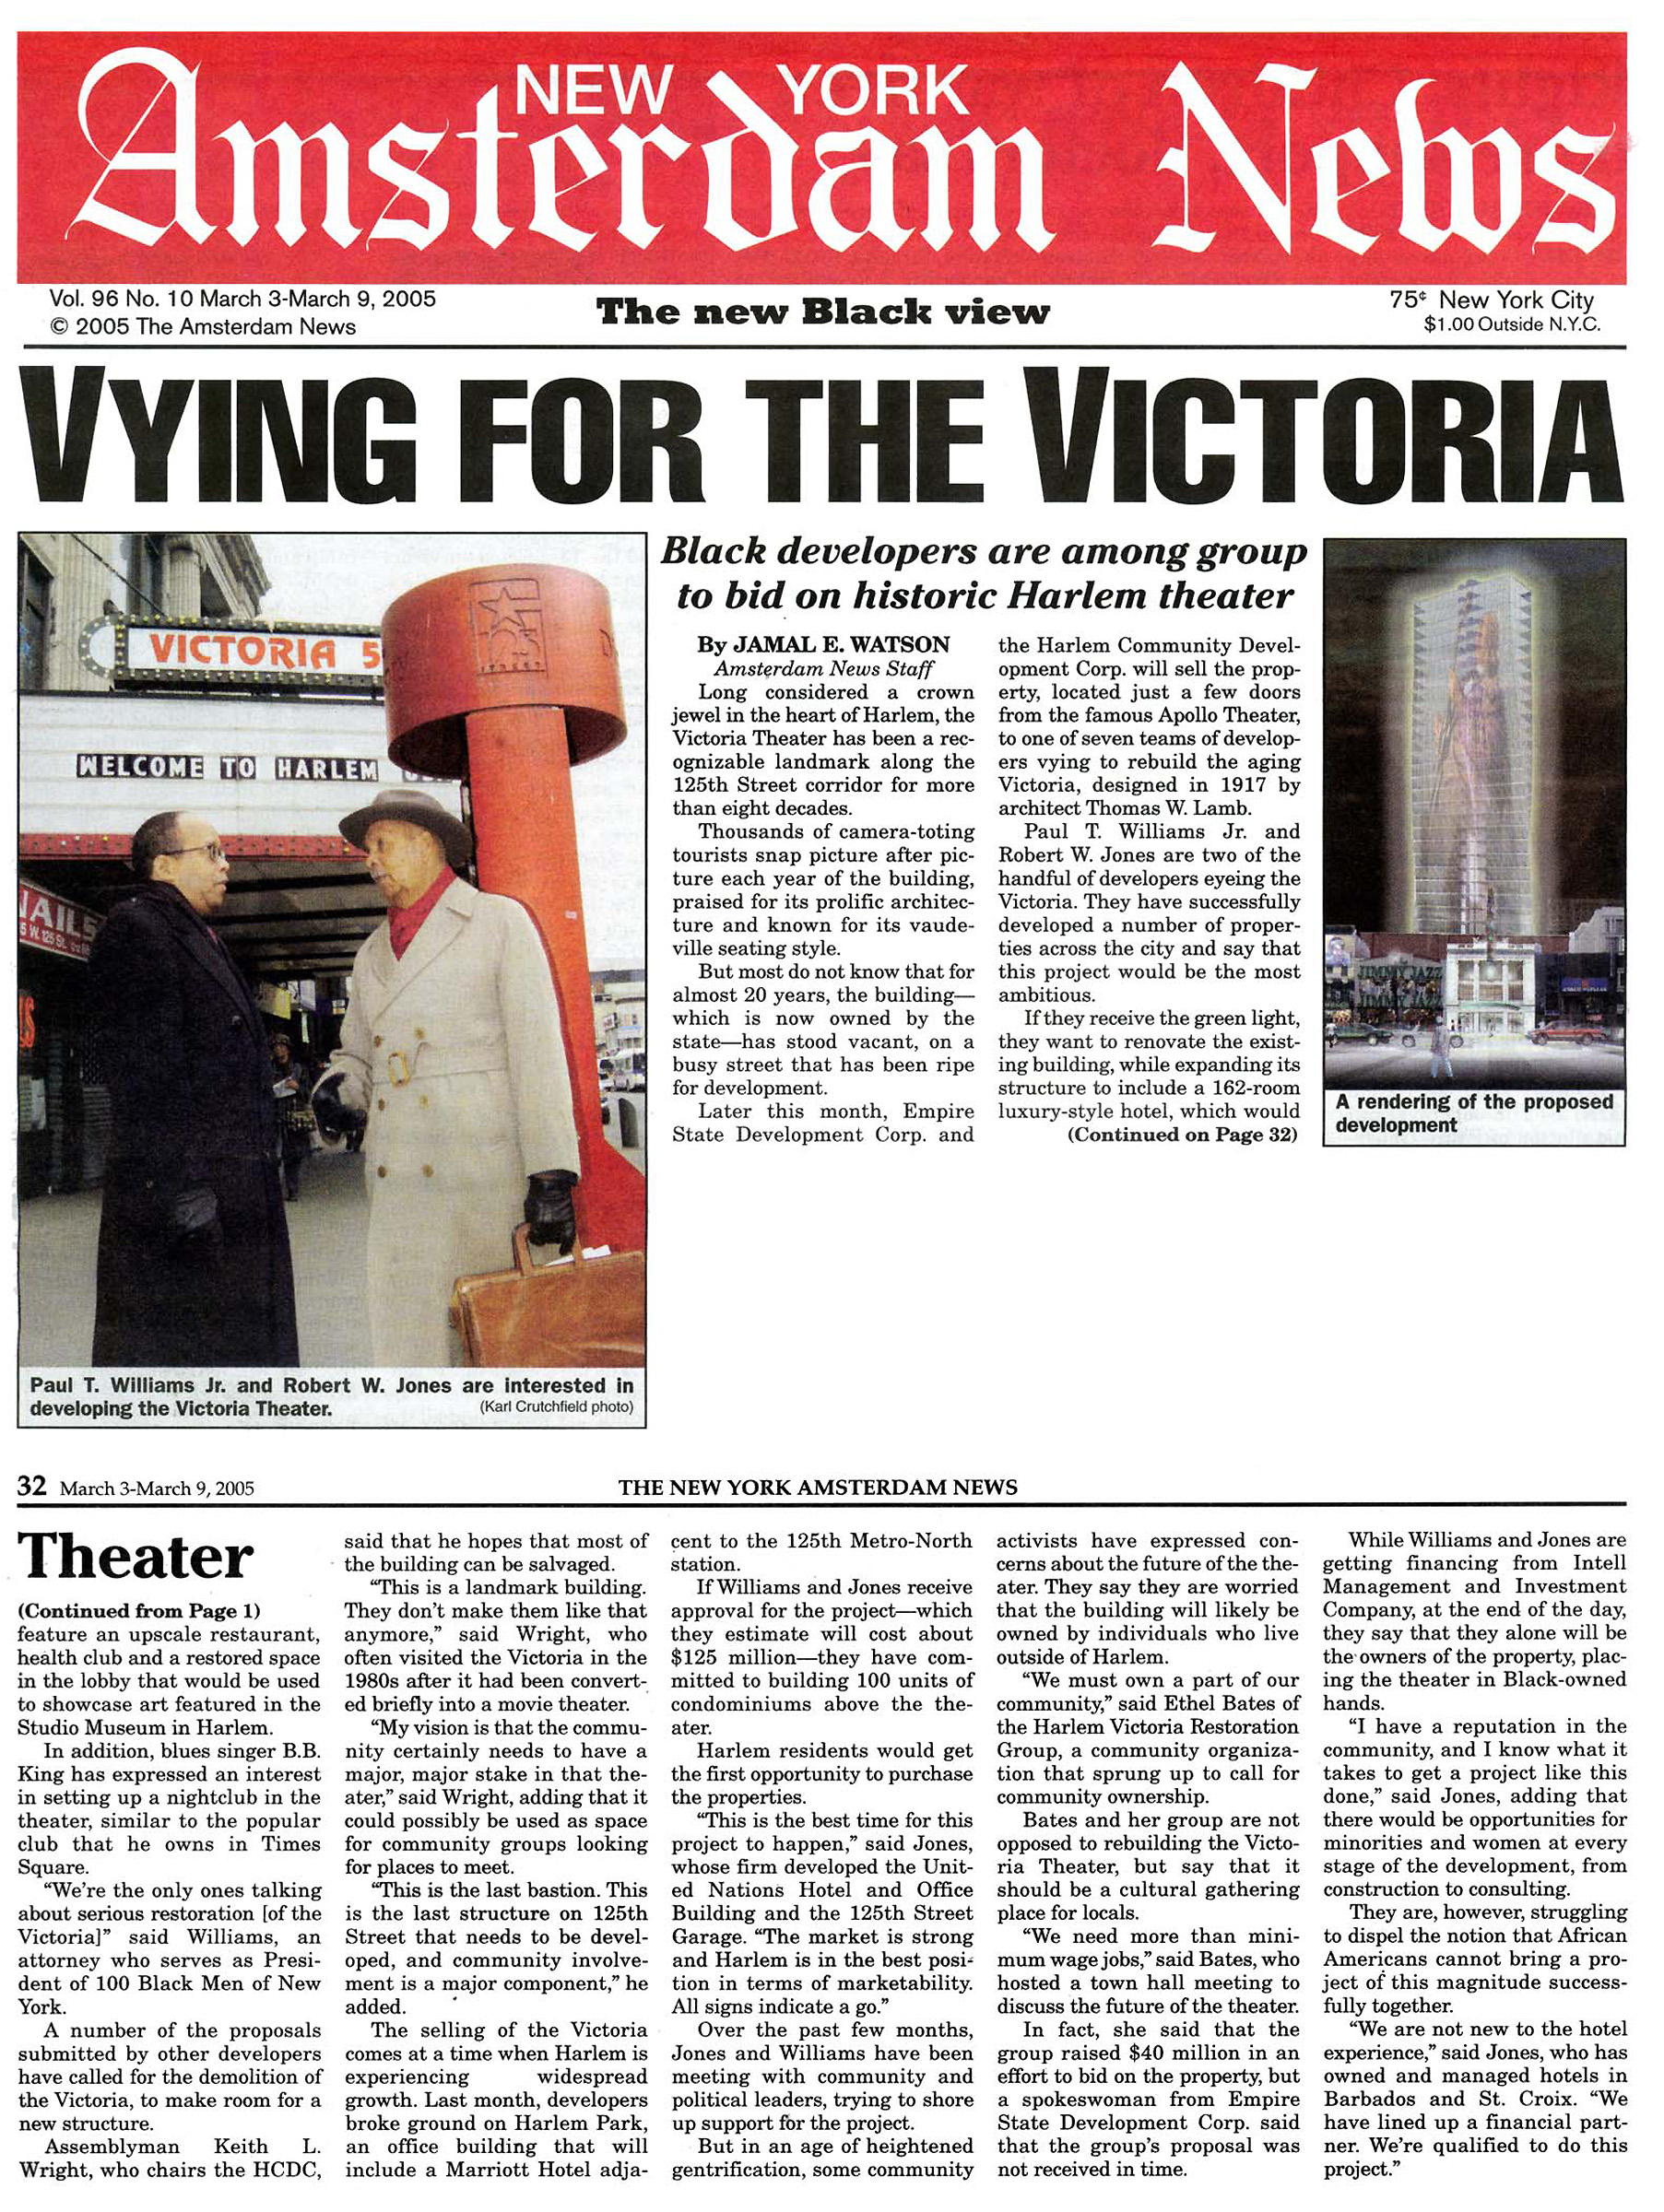 Victoria Theater Amsterdam News Letter size.jpg